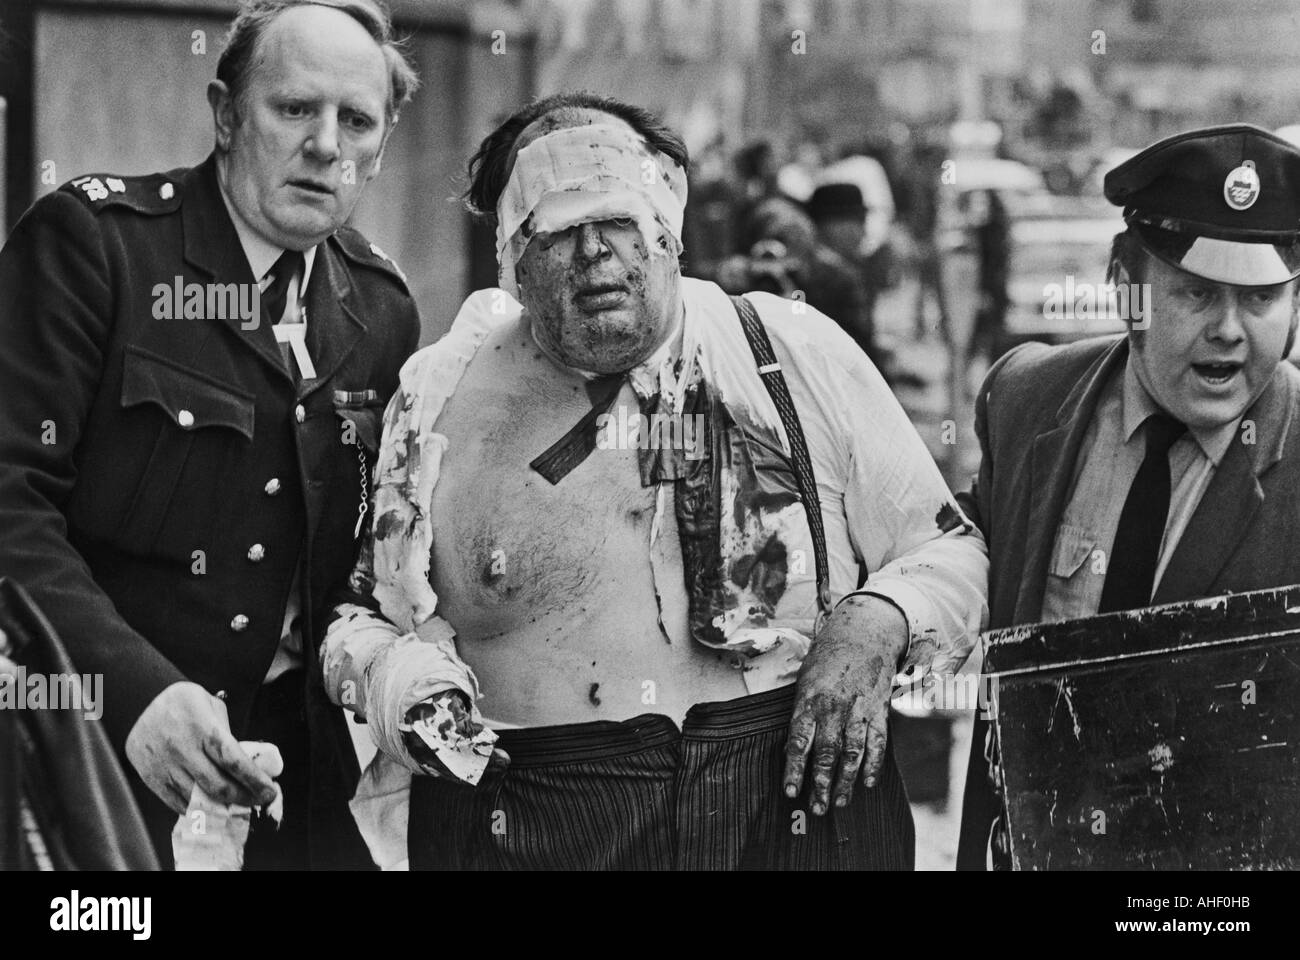 A barrister being helped to safety after the IRA bombed the Old Bailey on 8 March 1973 - Stock Image